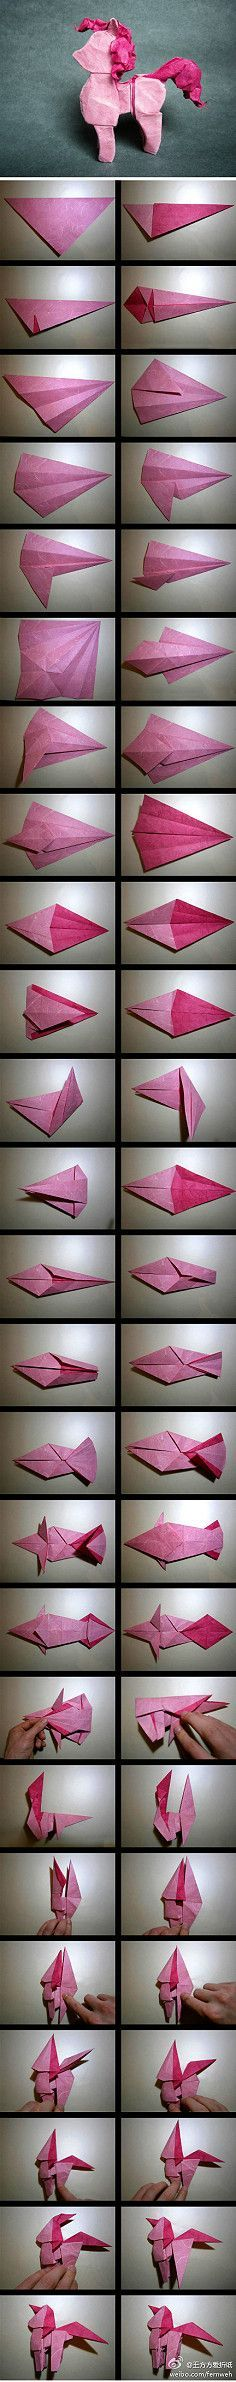 I want to make this but I'm so bad at origami #origami